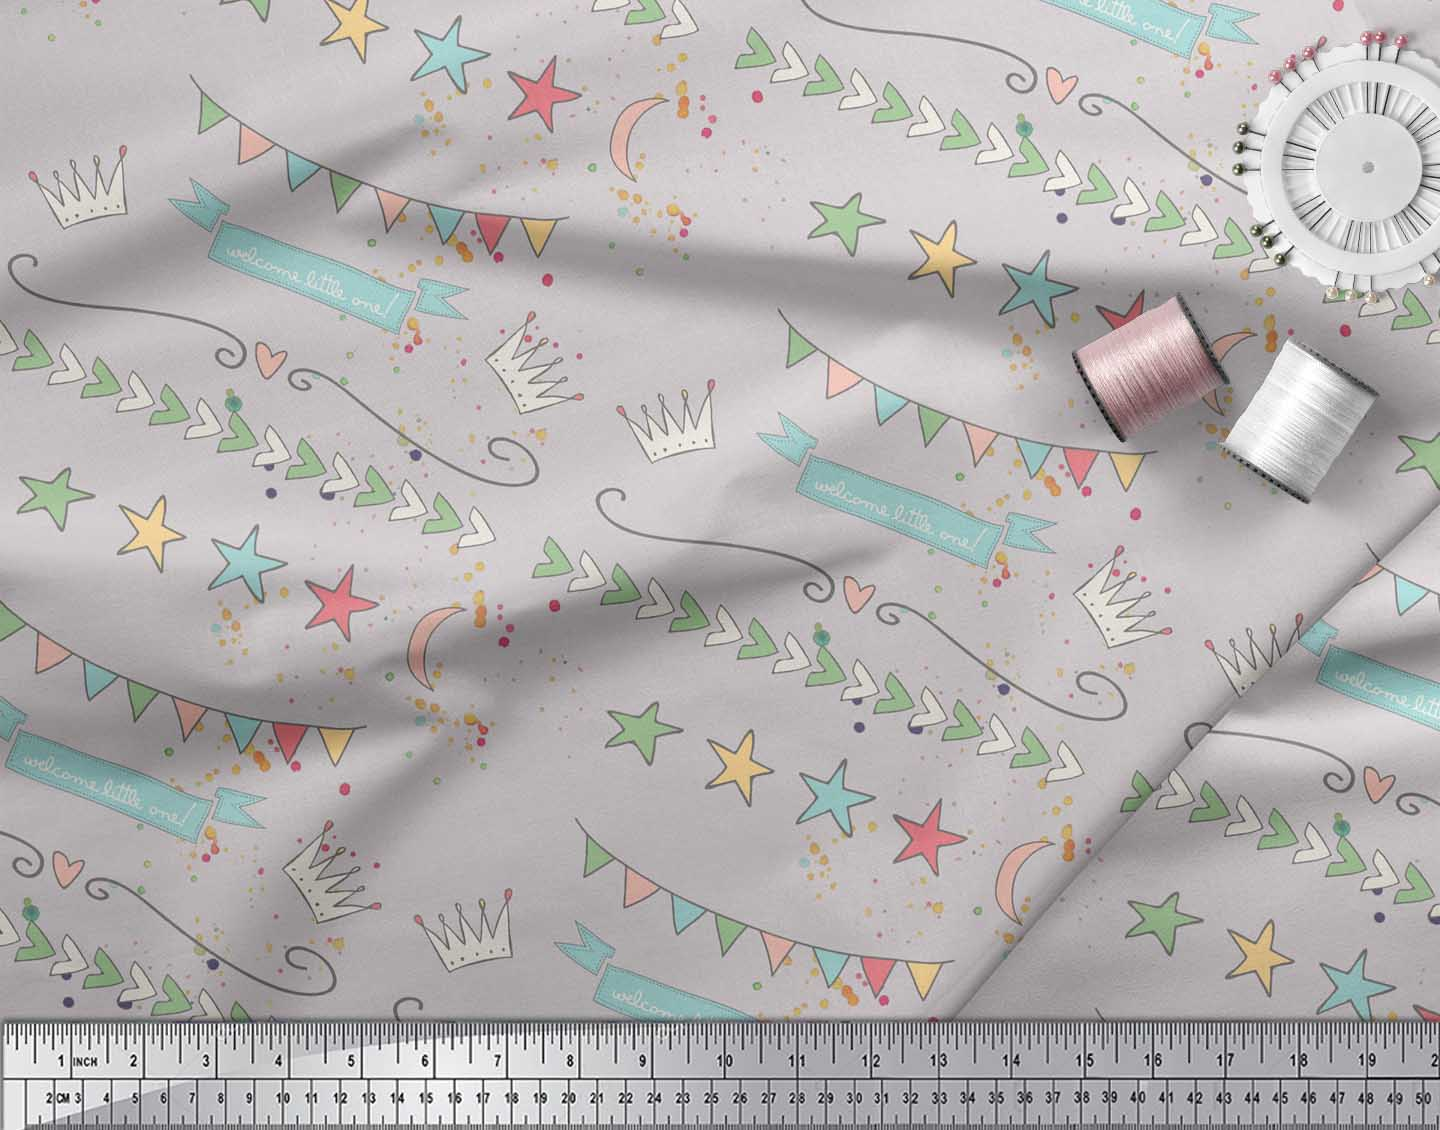 Soimoi-Gray-Cotton-Poplin-Fabric-Welcome-Little-One-Kids-Fabric-yma thumbnail 3